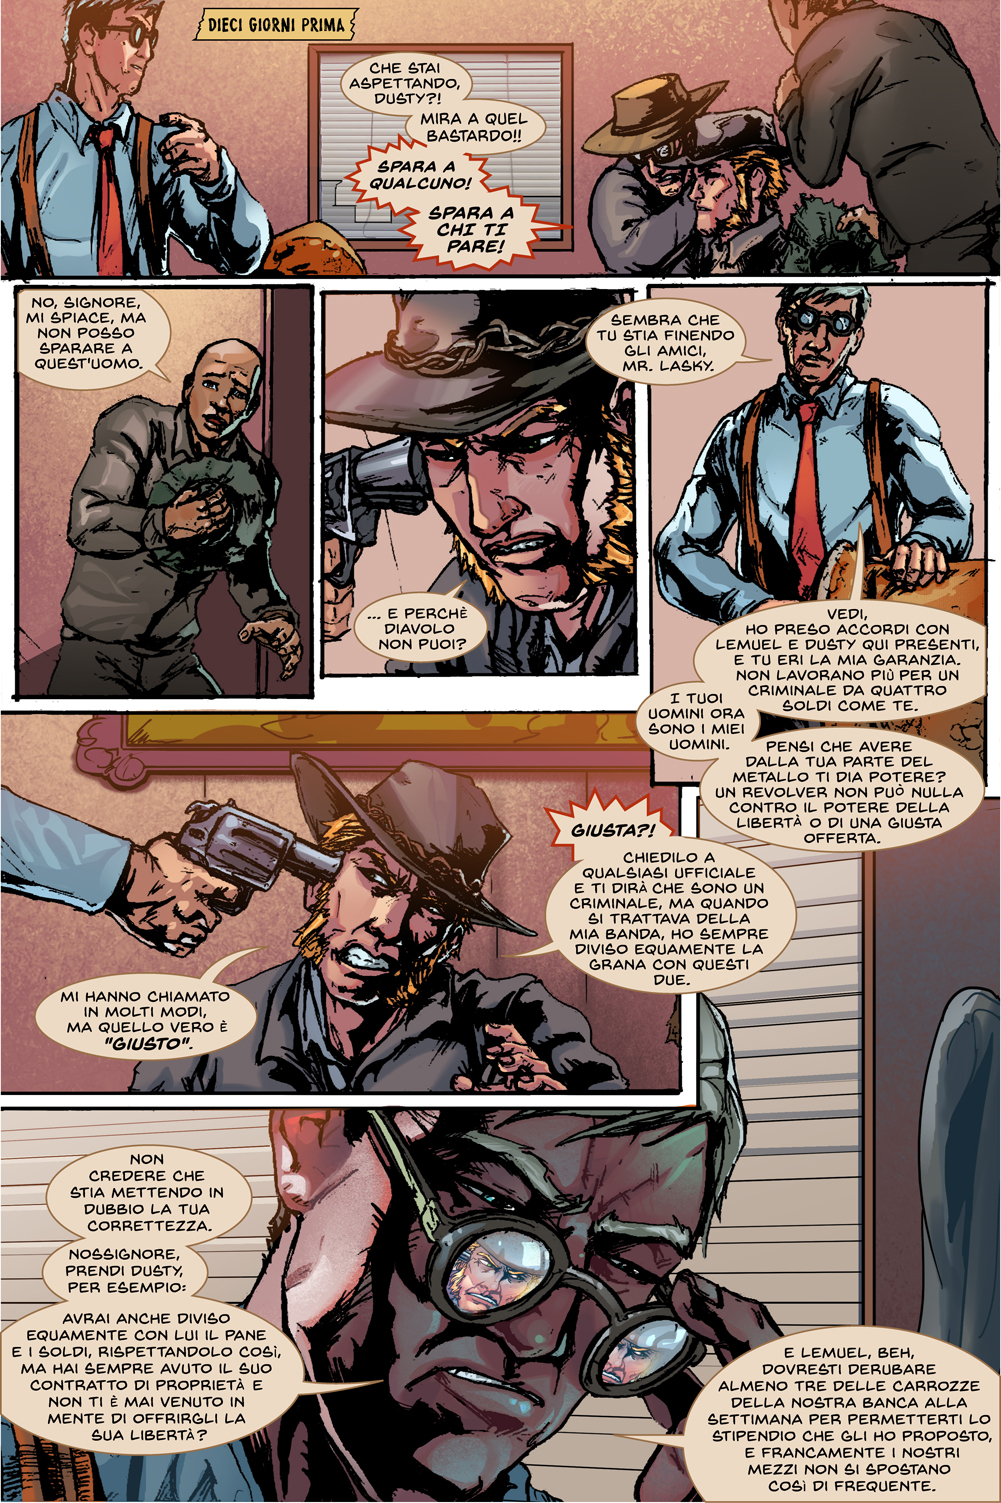 Sartana #1 - Page 10 - Italian Translation